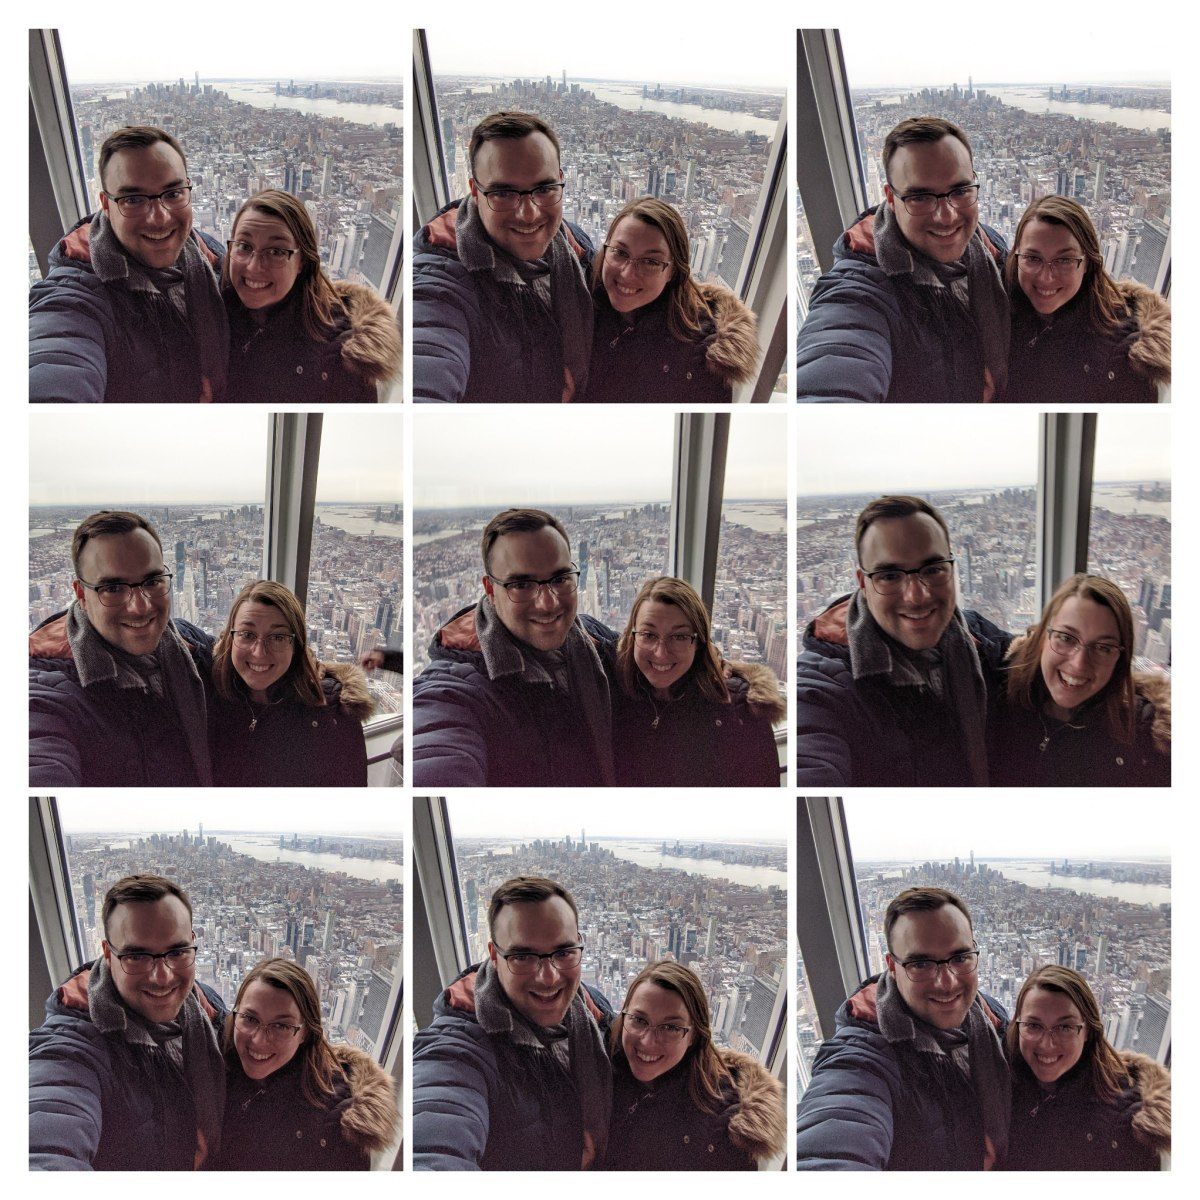 Stephanie and Dylan at the Empire State Building in New York during the last vacation we had in the U.S. before the pandemic.